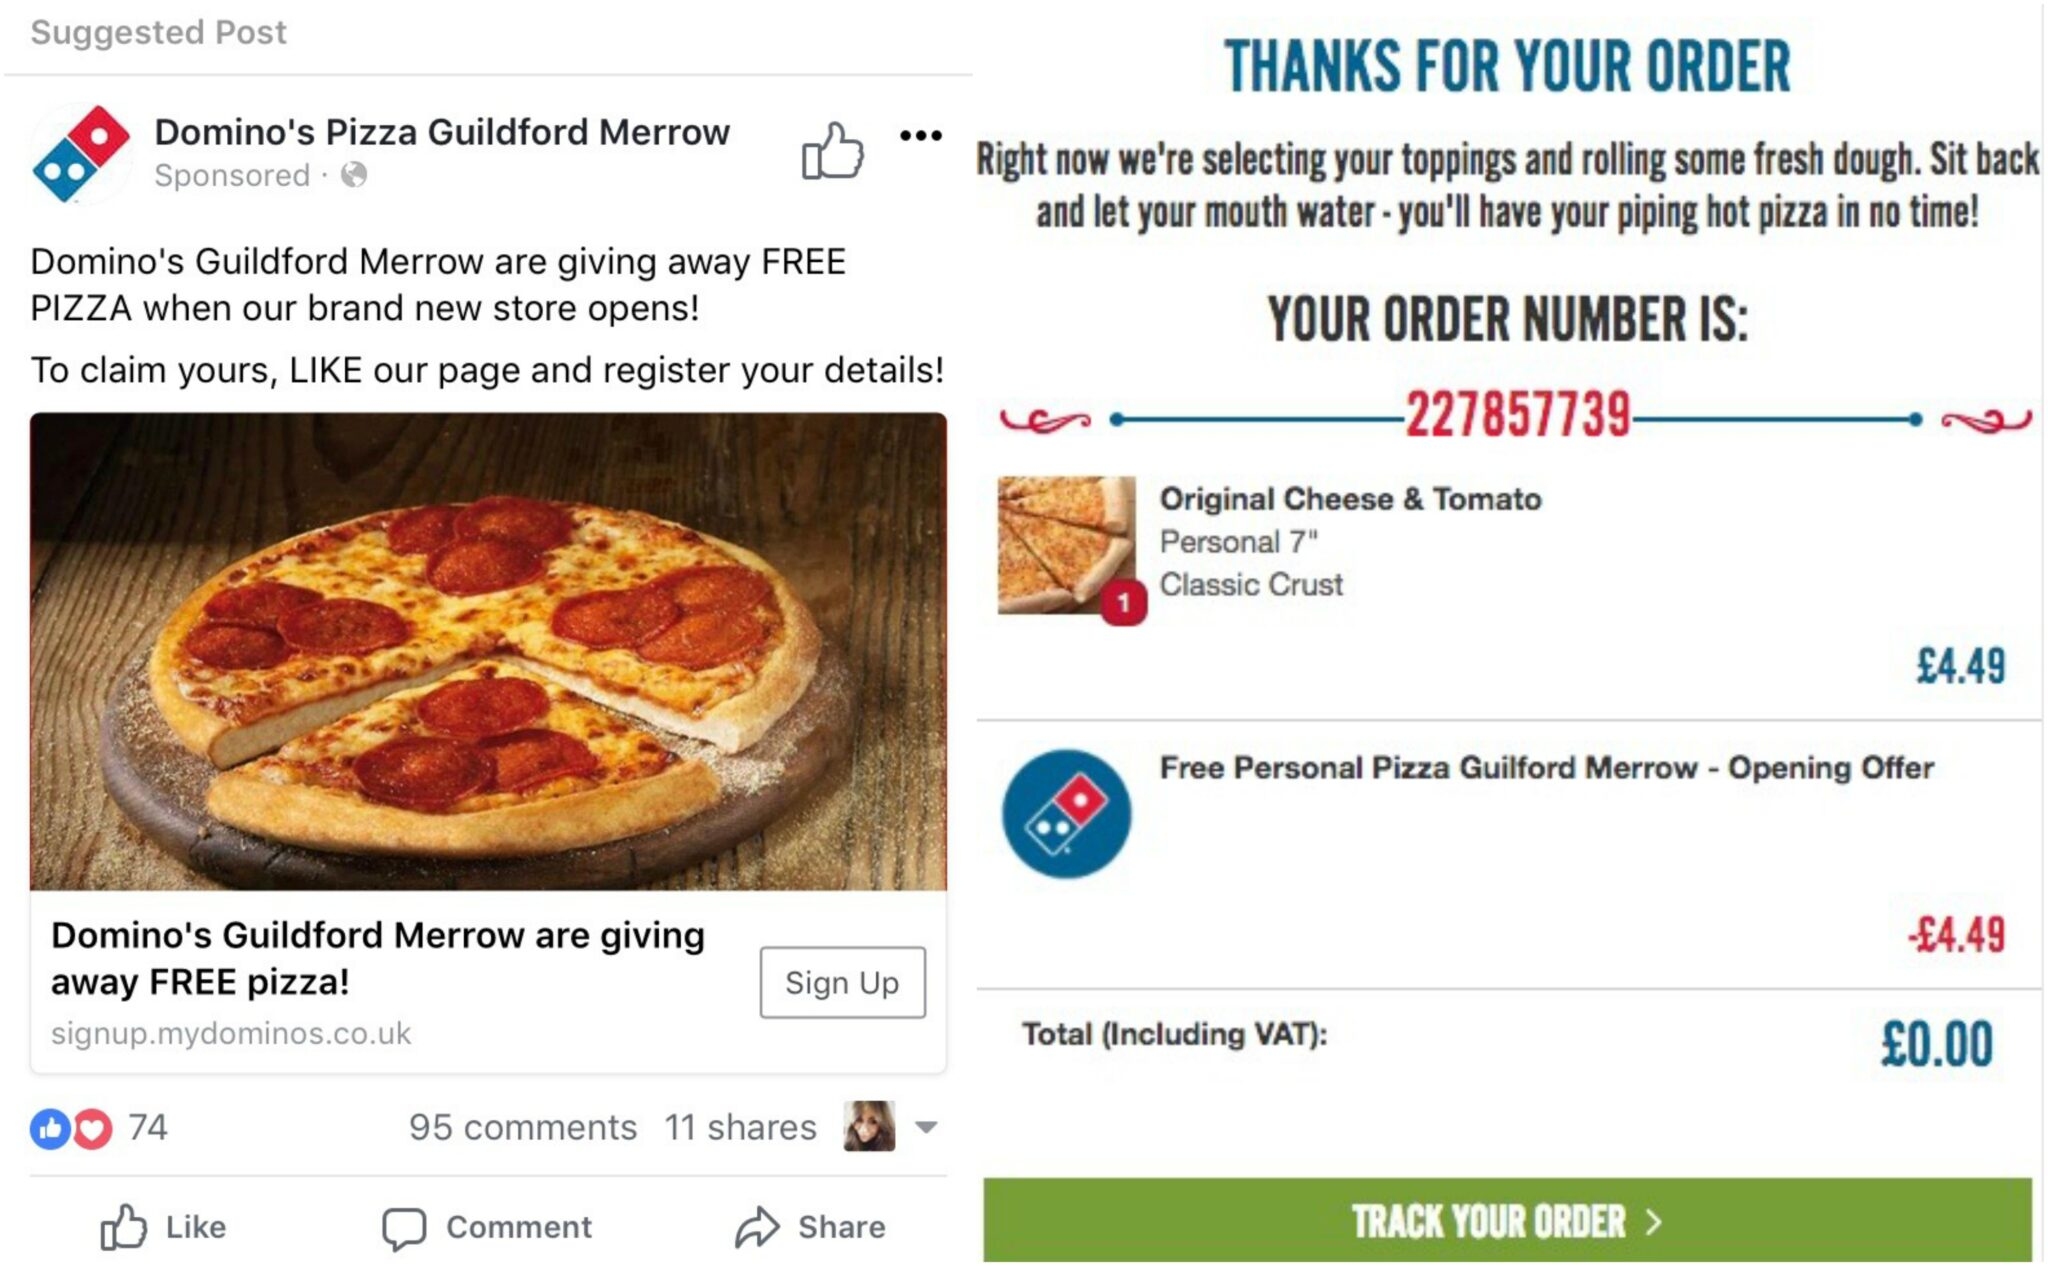 Free Dominos pizza - opening offer